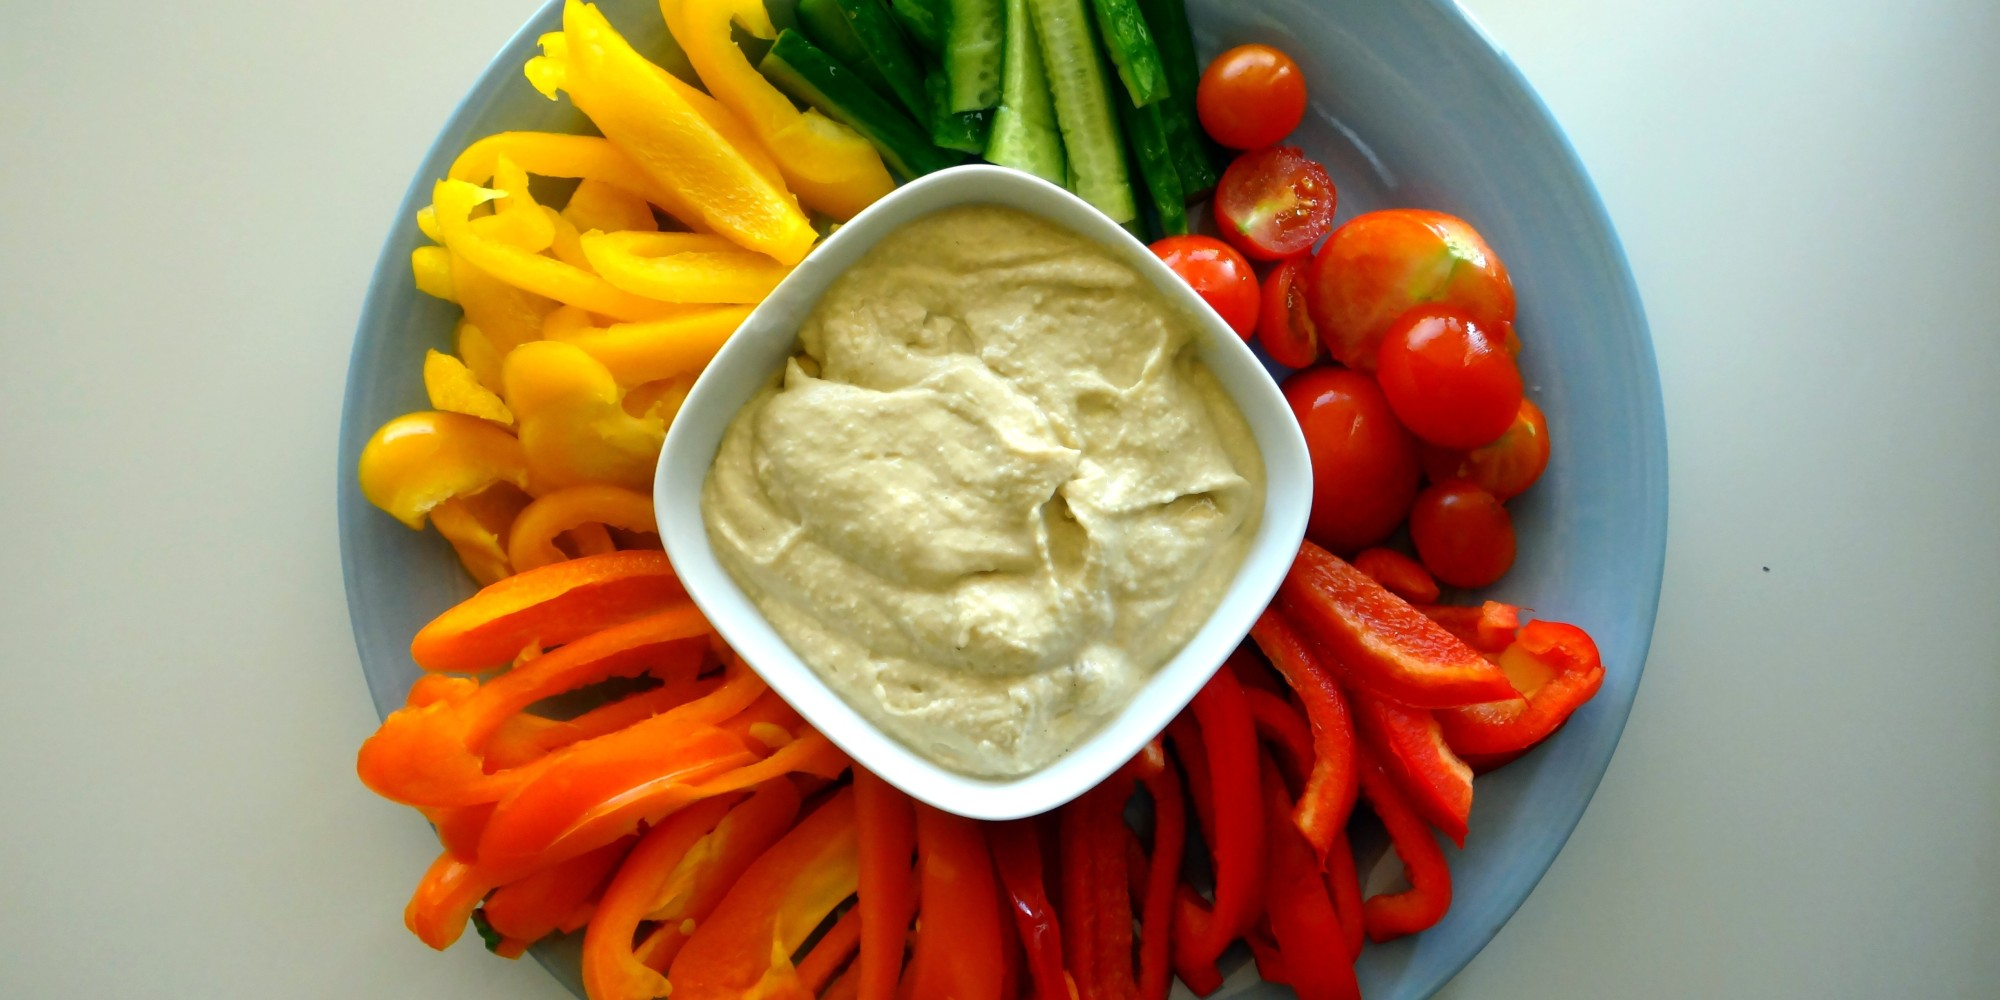 [photo] A veggie plate with hummus